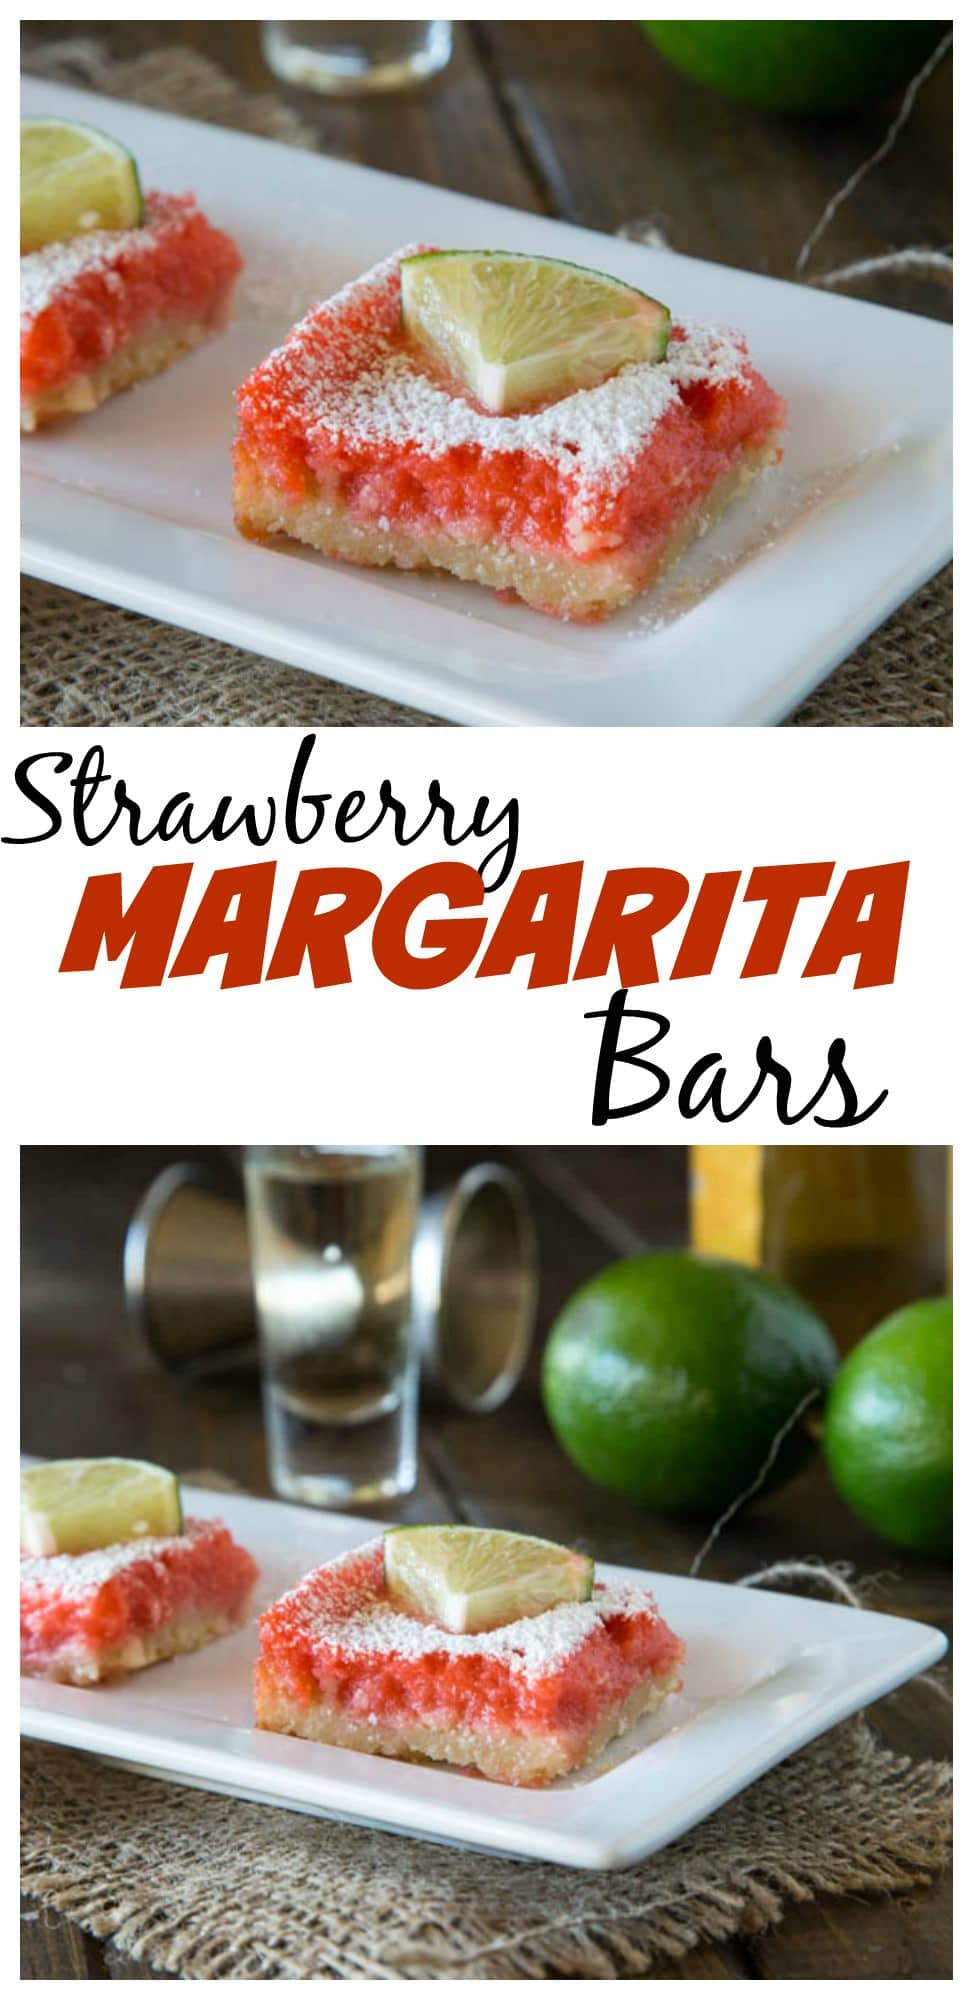 close up of strawberry margarita bars on a plate